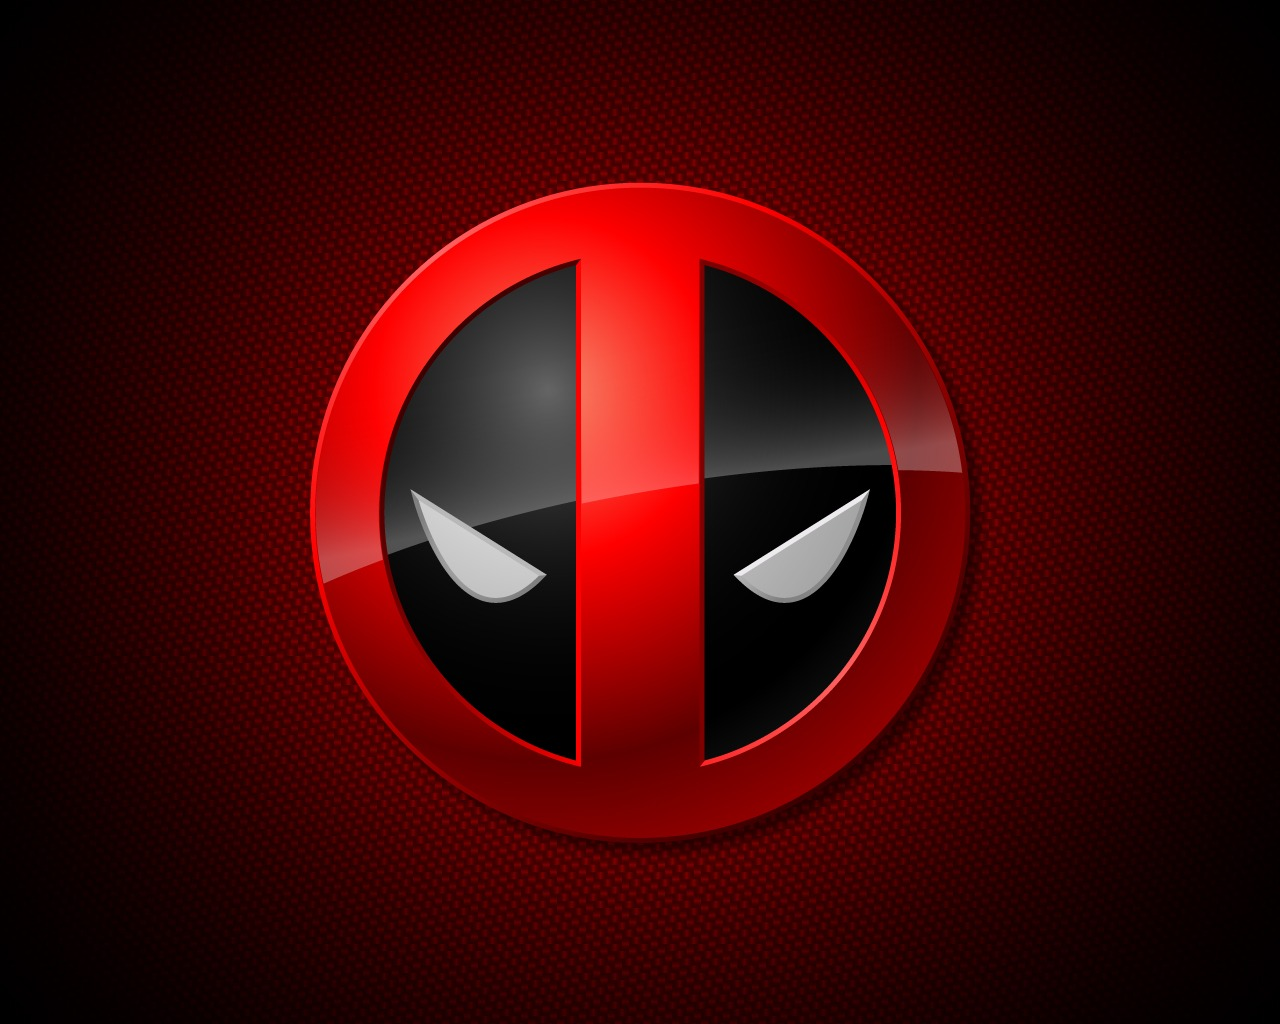 20140728grab chimichangas can deadpool test footage leaks online 1280x1024